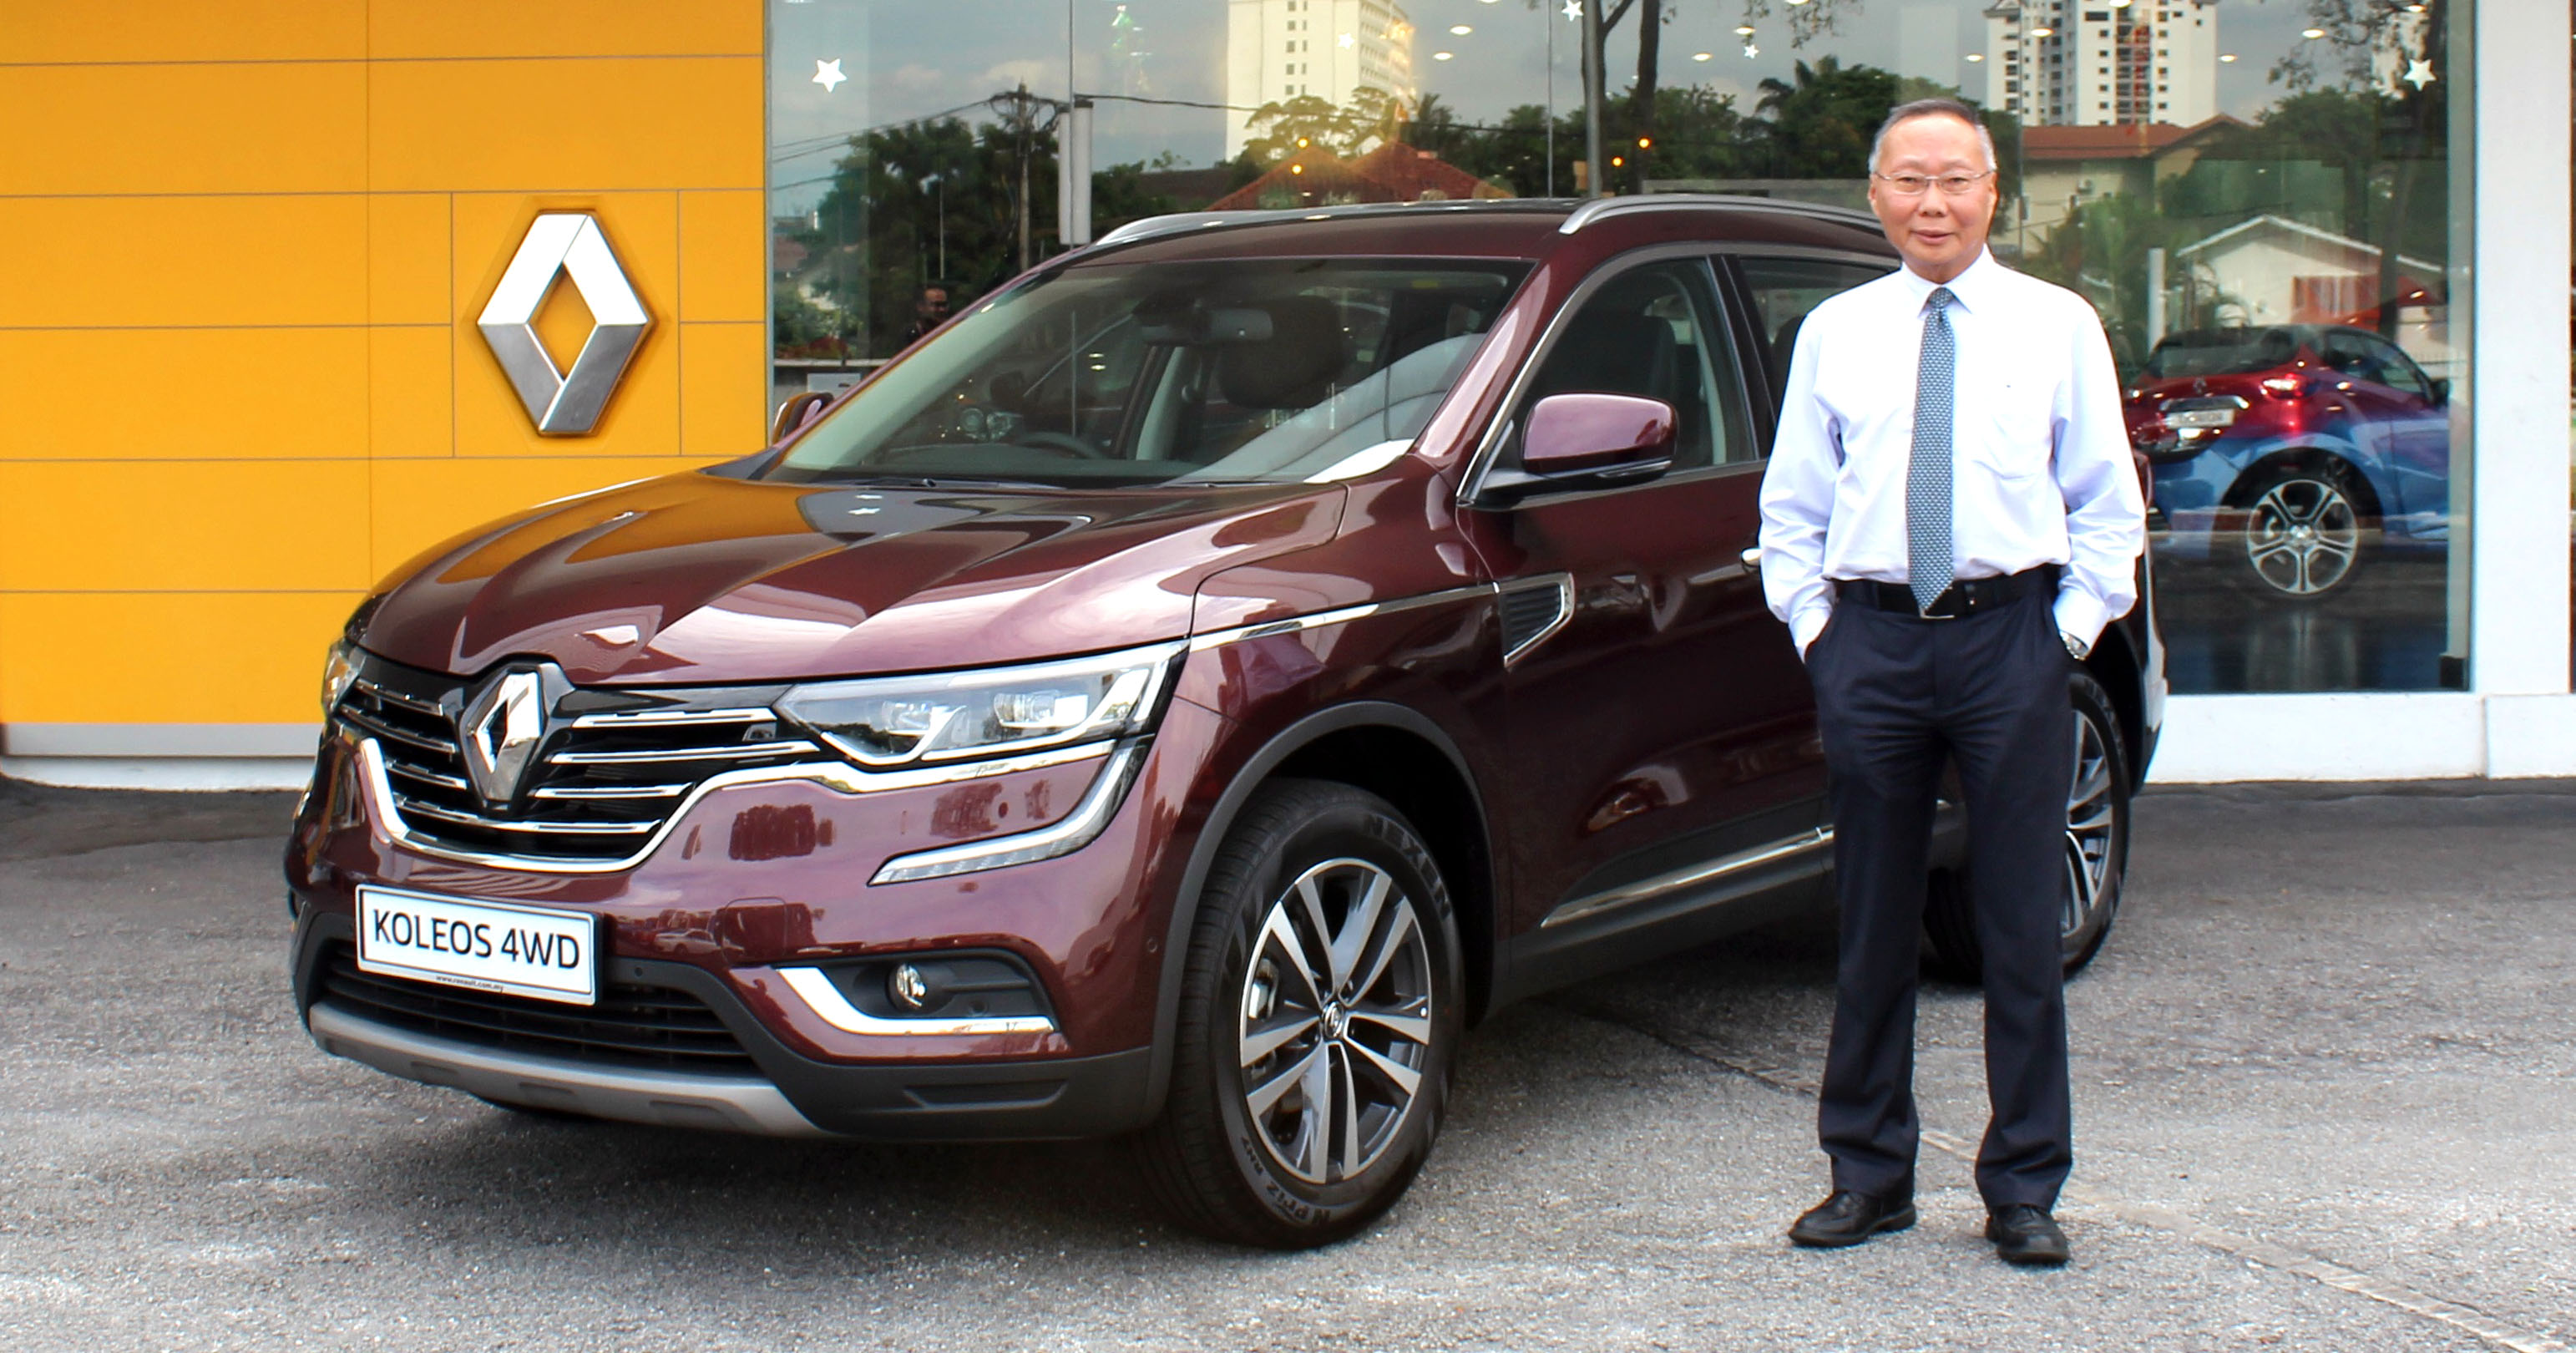 renault koleos 2 5l now officially available with 4wd in malaysia estimated price tag of rm201 800. Black Bedroom Furniture Sets. Home Design Ideas